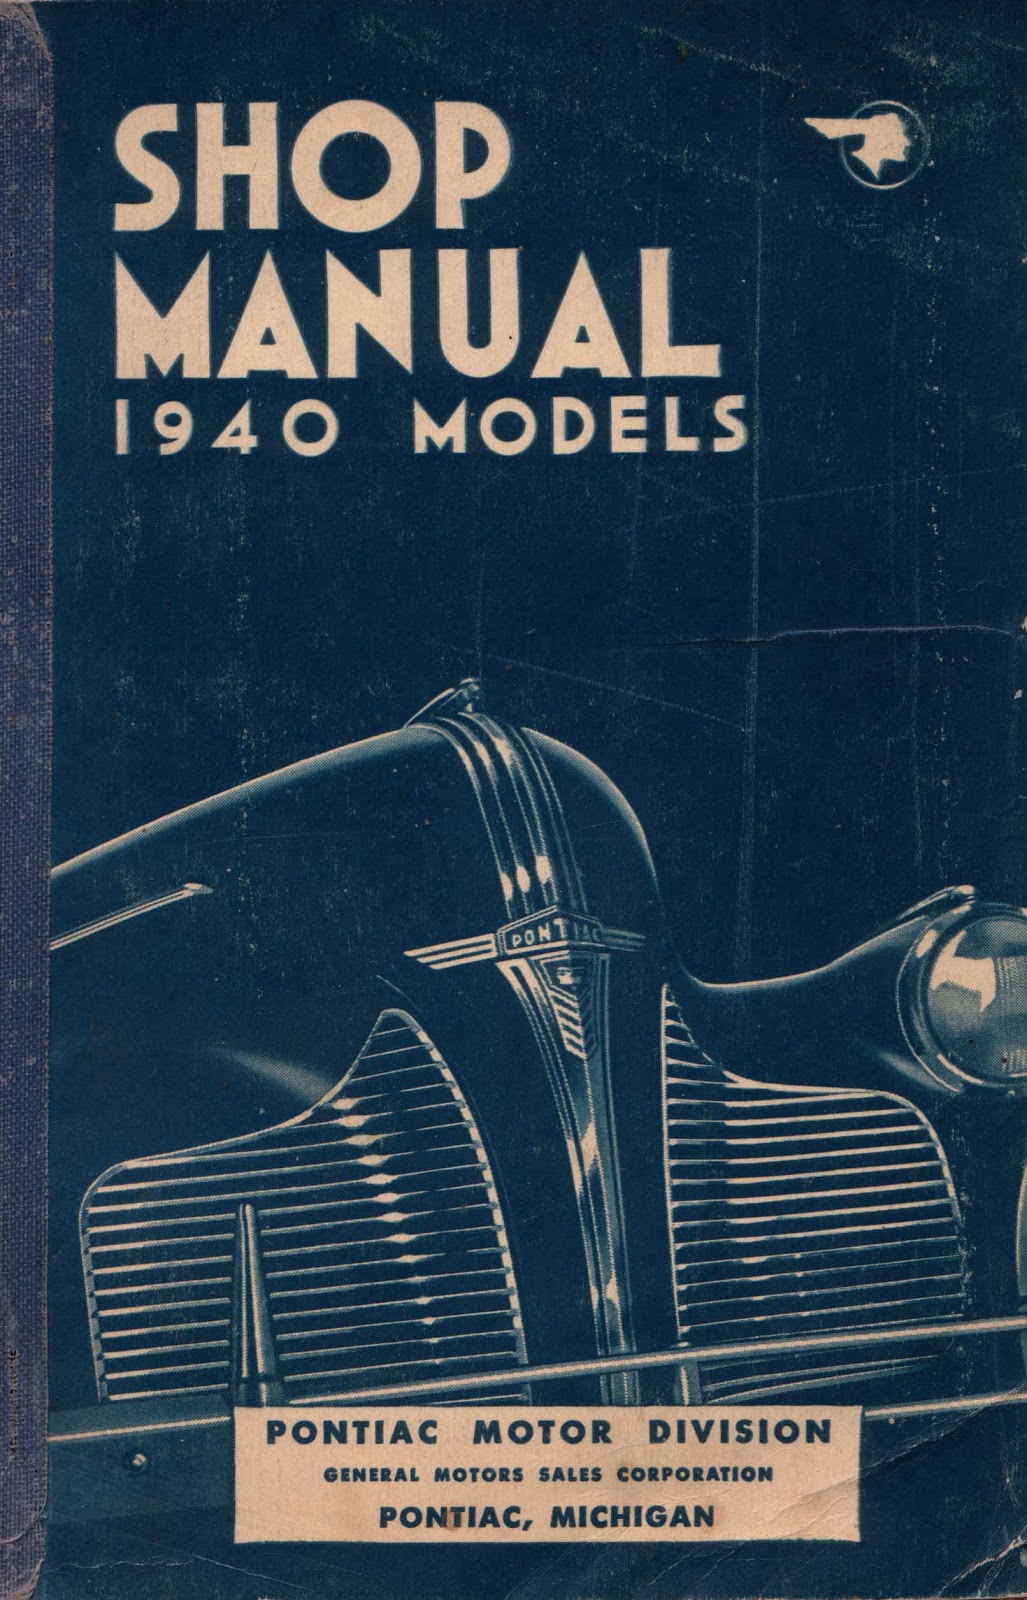 huc gabet pontiac shop manual 1940 models rh hucandgabetbooks blogspot com 1956 pontiac shop manual pontiac solstice shop manual